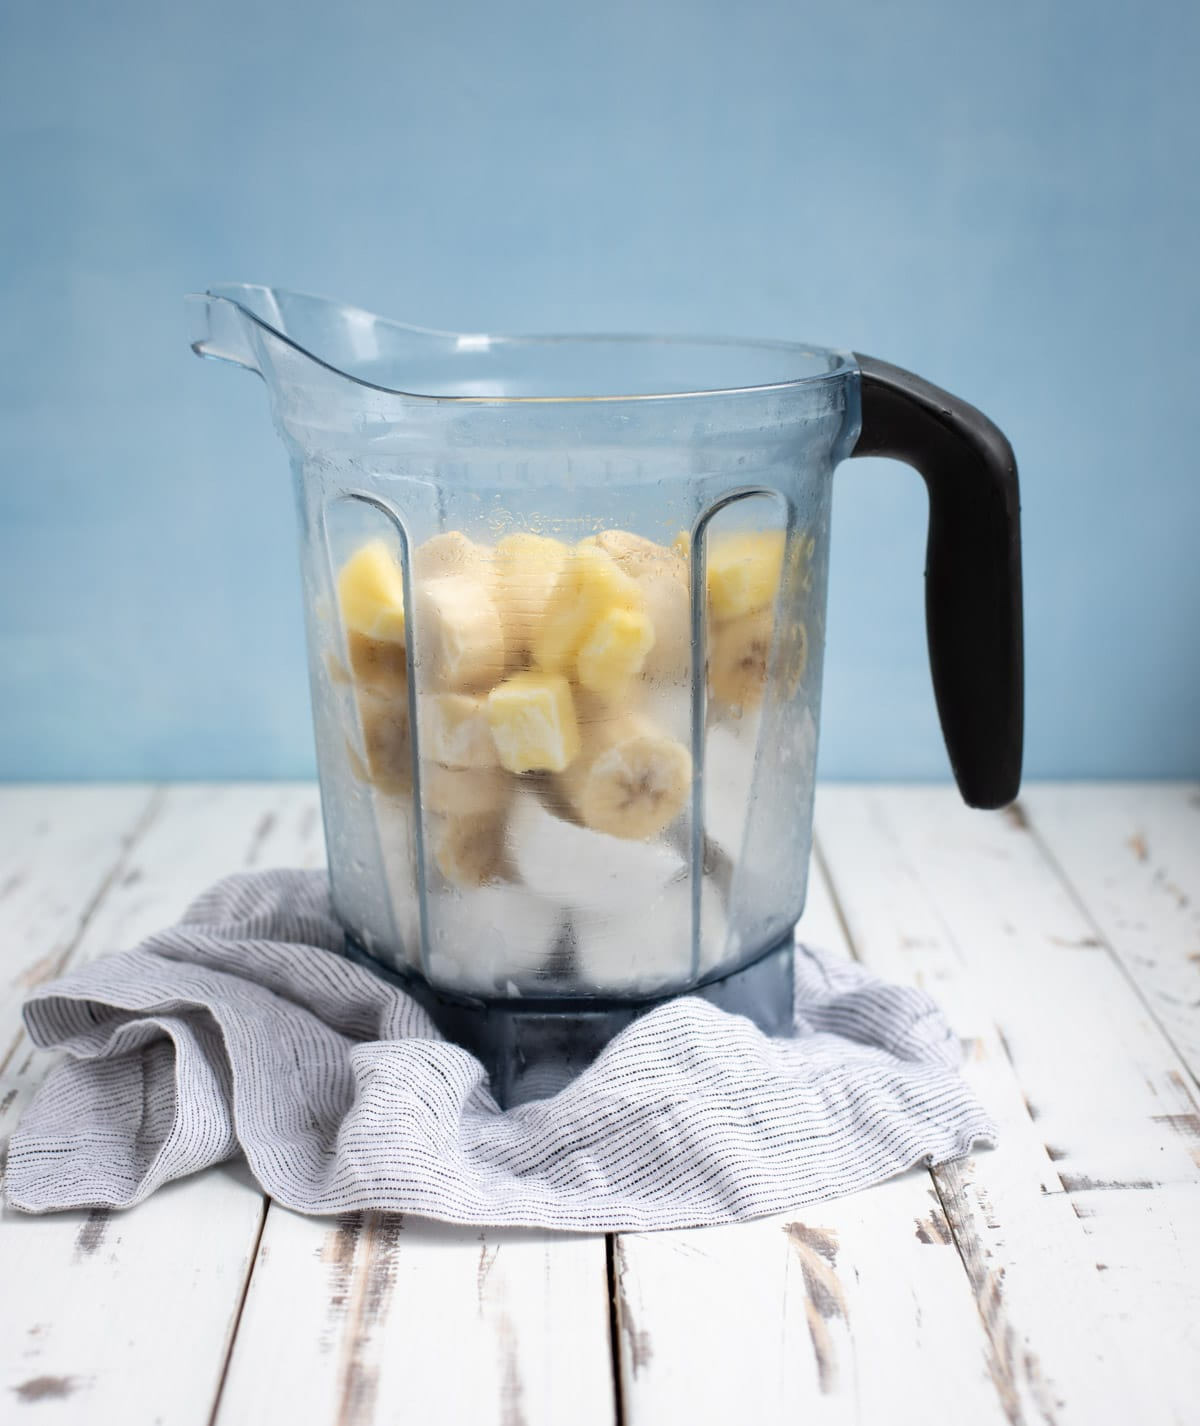 blender pitcher with banana ice cream ingredients before being blended